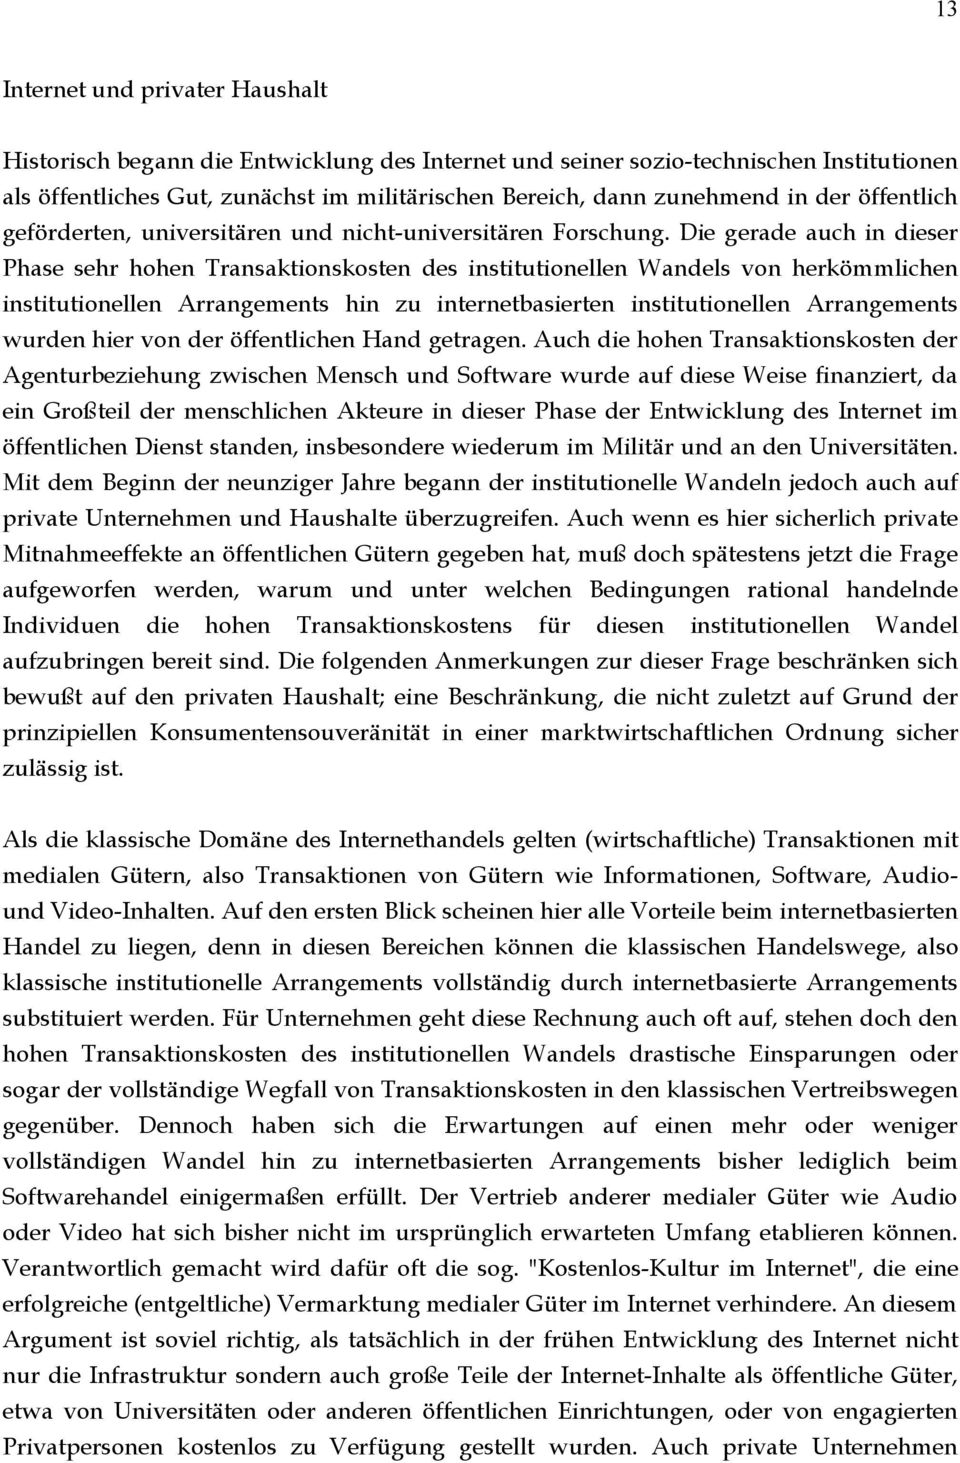 Die gerade auch in dieser Phase sehr hohen Transaktionskosten des institutionellen Wandels von herkömmlichen institutionellen Arrangements hin zu internetbasierten institutionellen Arrangements